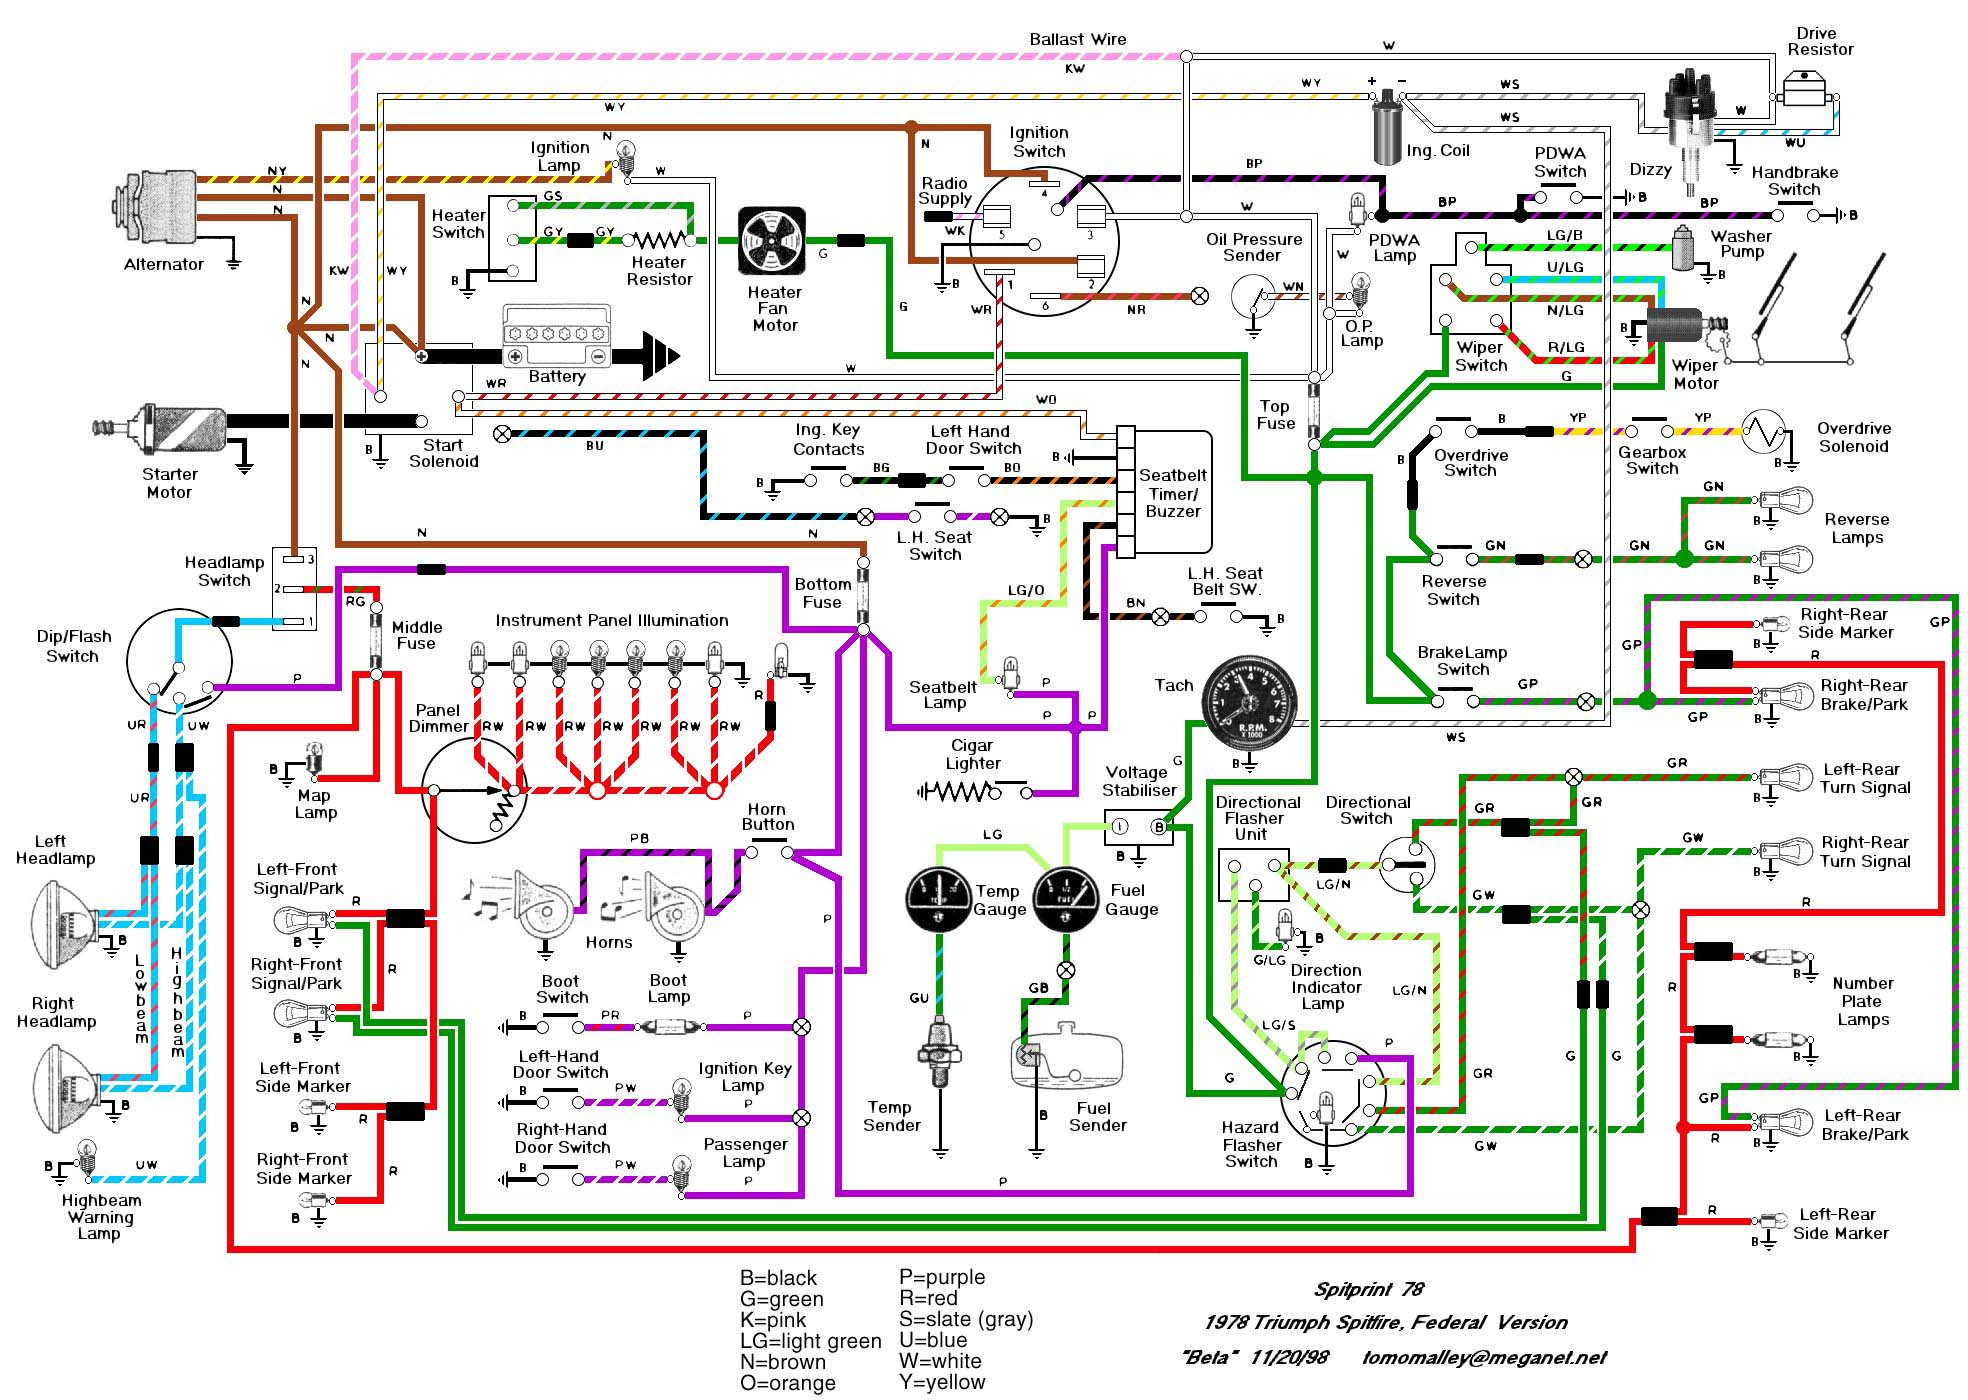 B Guitar Wiring Diagram on guitar switch wiring, guitar brands a-z, guitar repair tips, guitar wiring 101, guitar made out of a box, guitar circuit diagram, guitar jack wiring, guitar schematics, guitar dimensions, guitar tone control wiring, guitar on ground, guitar wiring theory, guitar wiring for dummies, guitar wiring harness, guitar wiring basics, guitar potentiometer wiring, guitar electronics wiring, guitar amp diagram, guitar parts diagram,